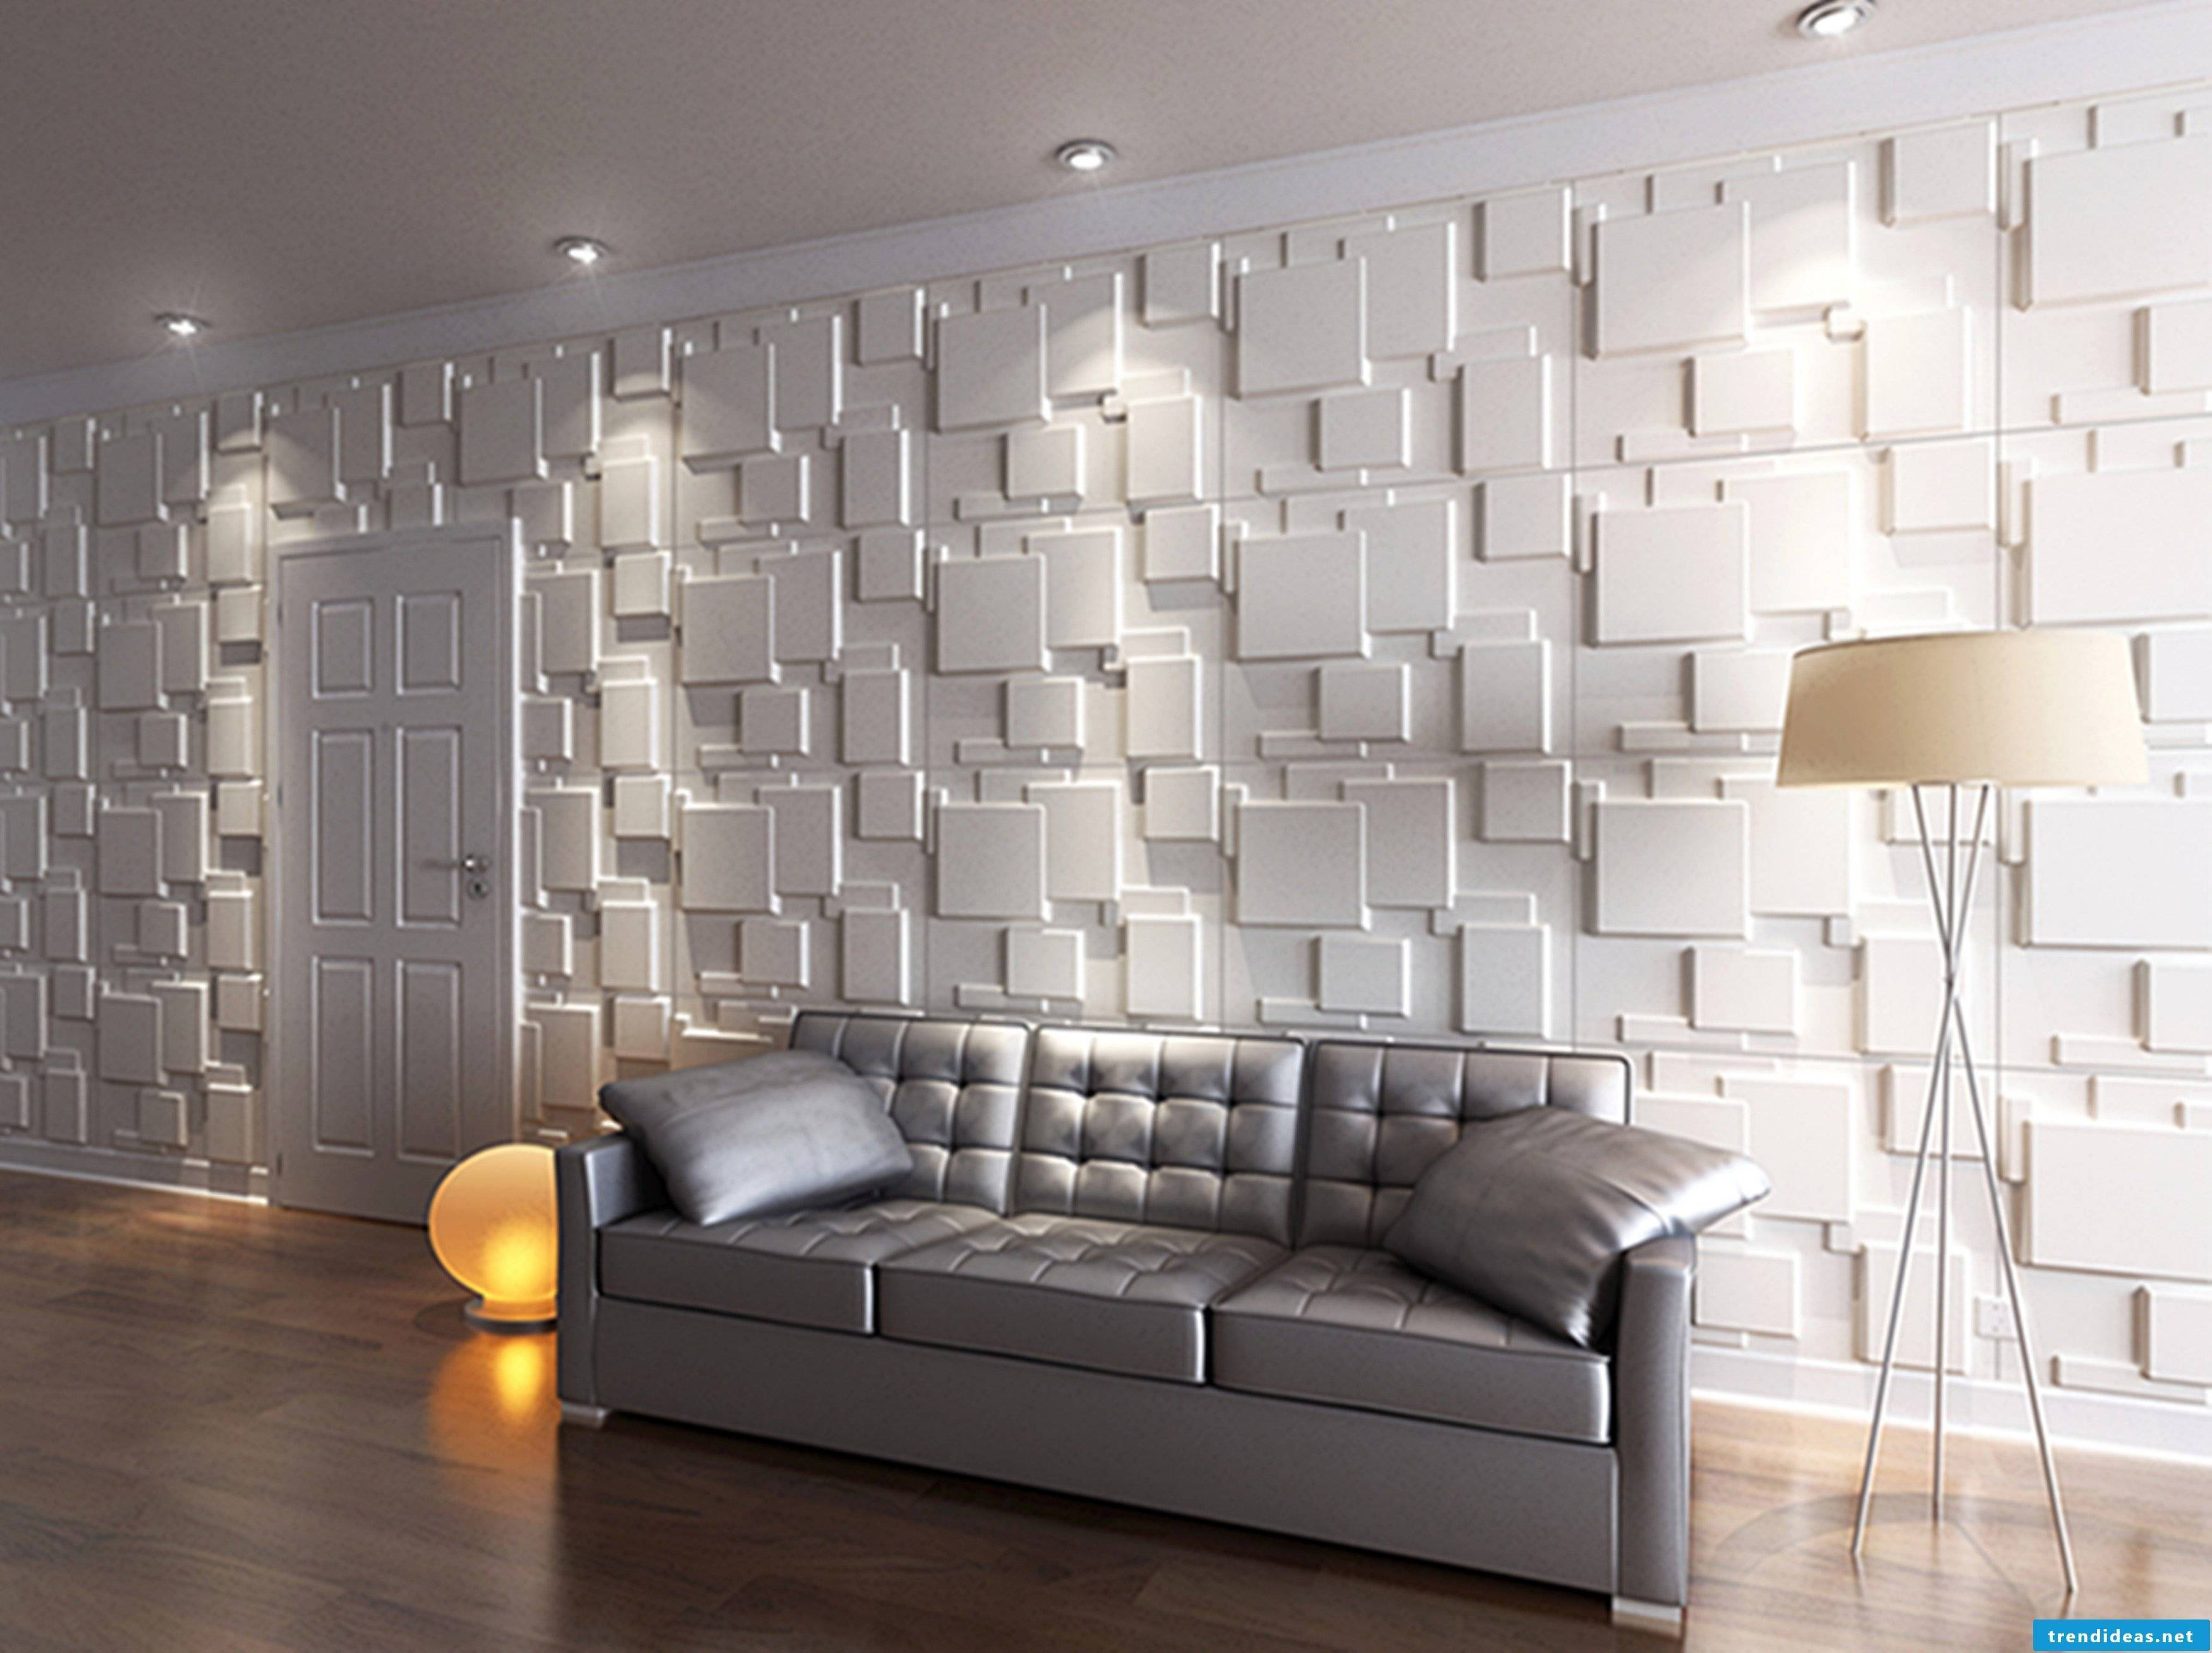 Do you like this 3D effect with this wall covering plastic